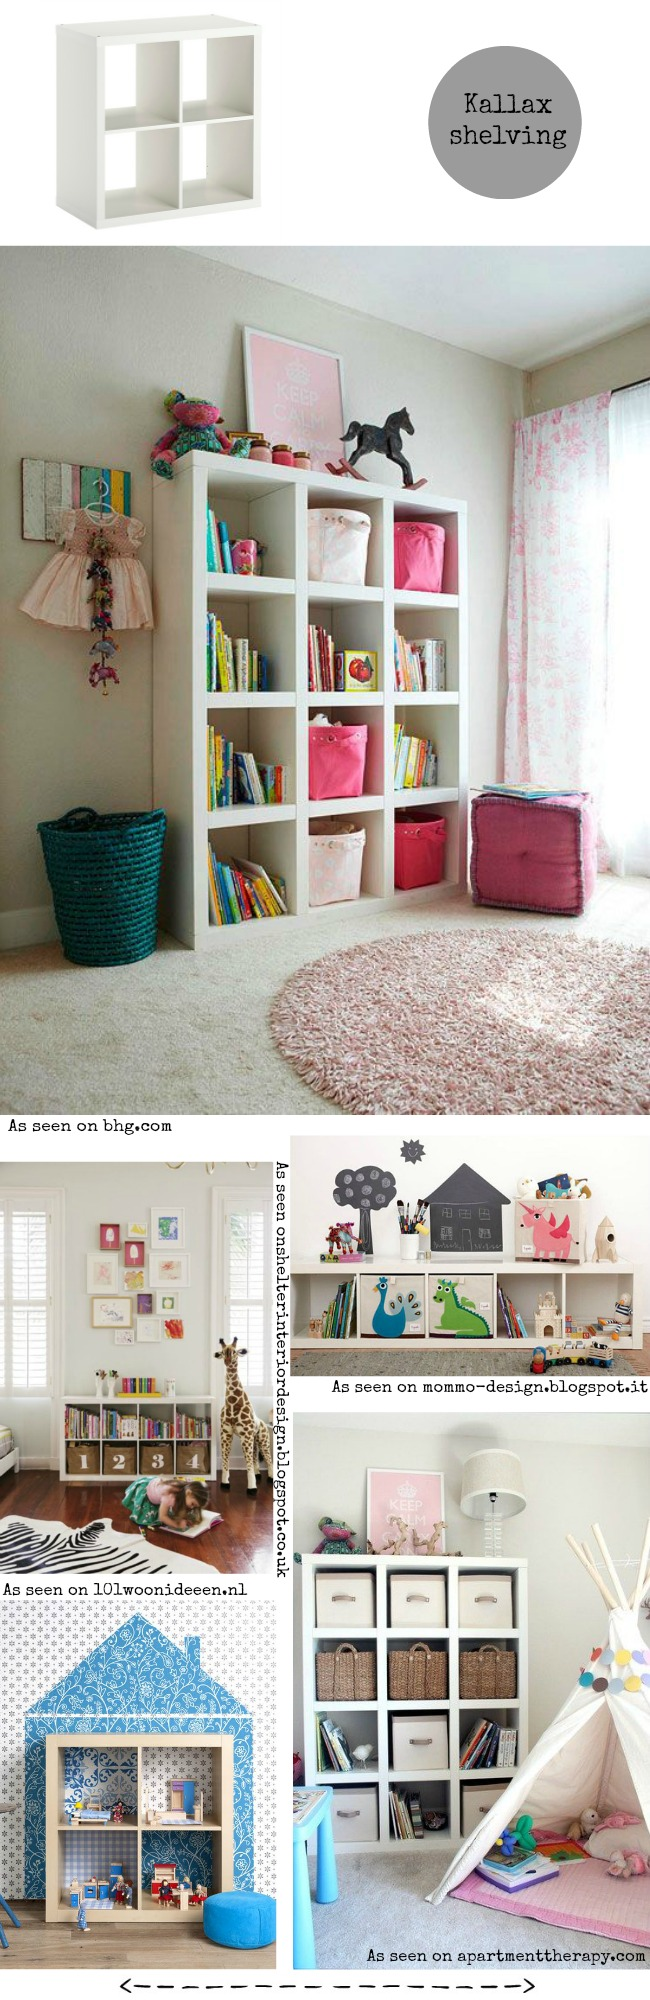 Different ways to use the Kallax / Expedit shelving from Ikea for a kids' bedroom